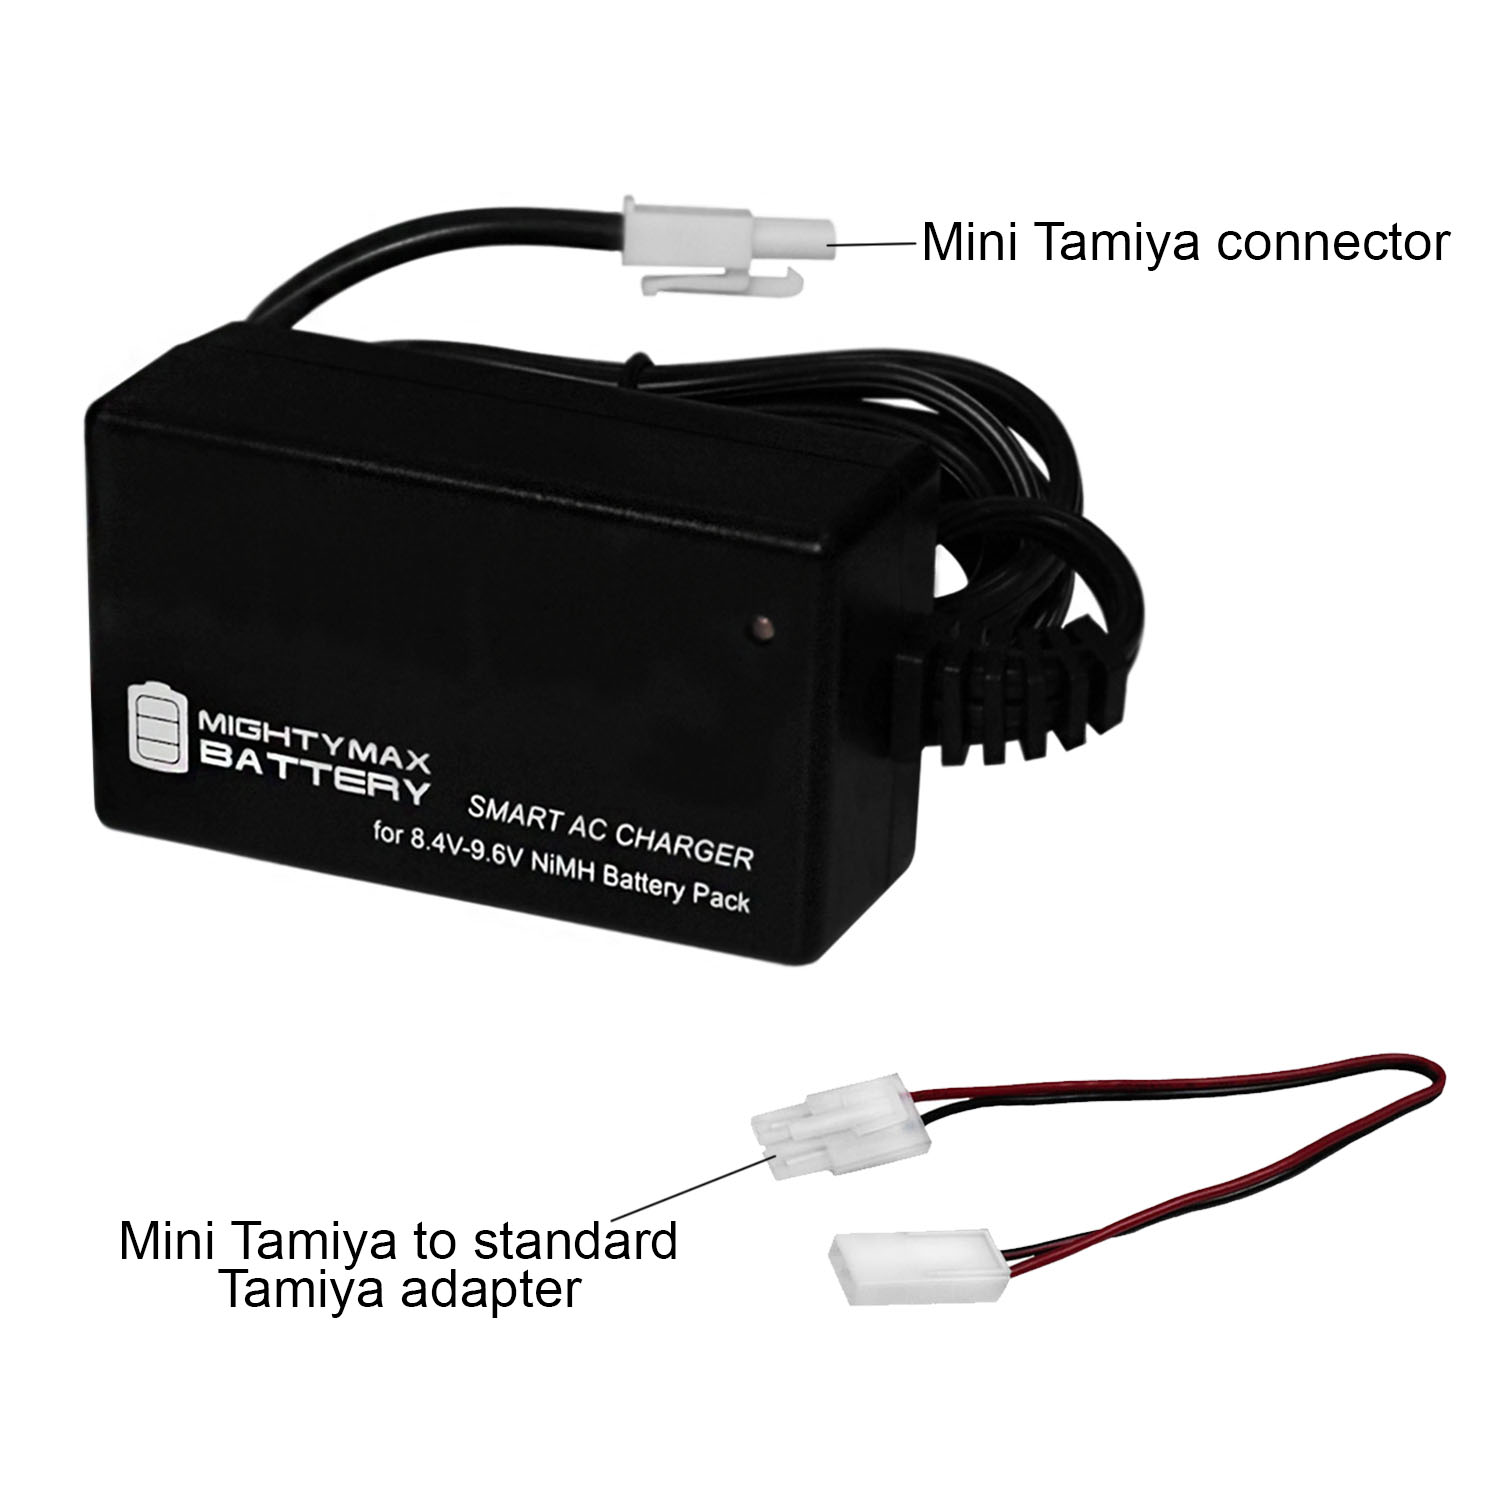 Smart Charger for 8.4V-9.6V NiMH Battery Packs w/ Mini Tamiya Connector - 2